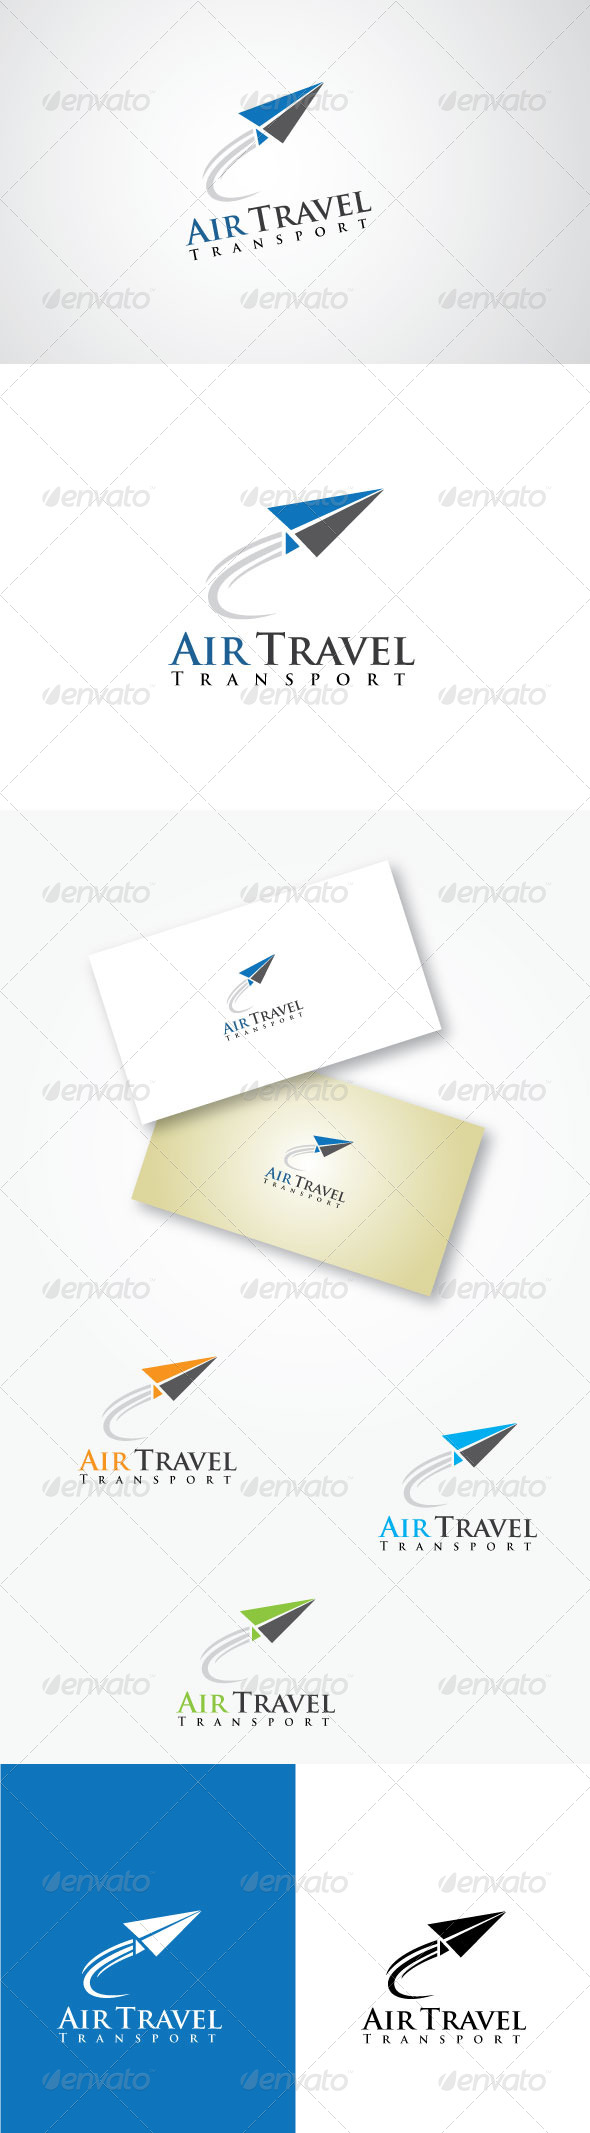 GraphicRiver Air Travel Transport Logo 5269140